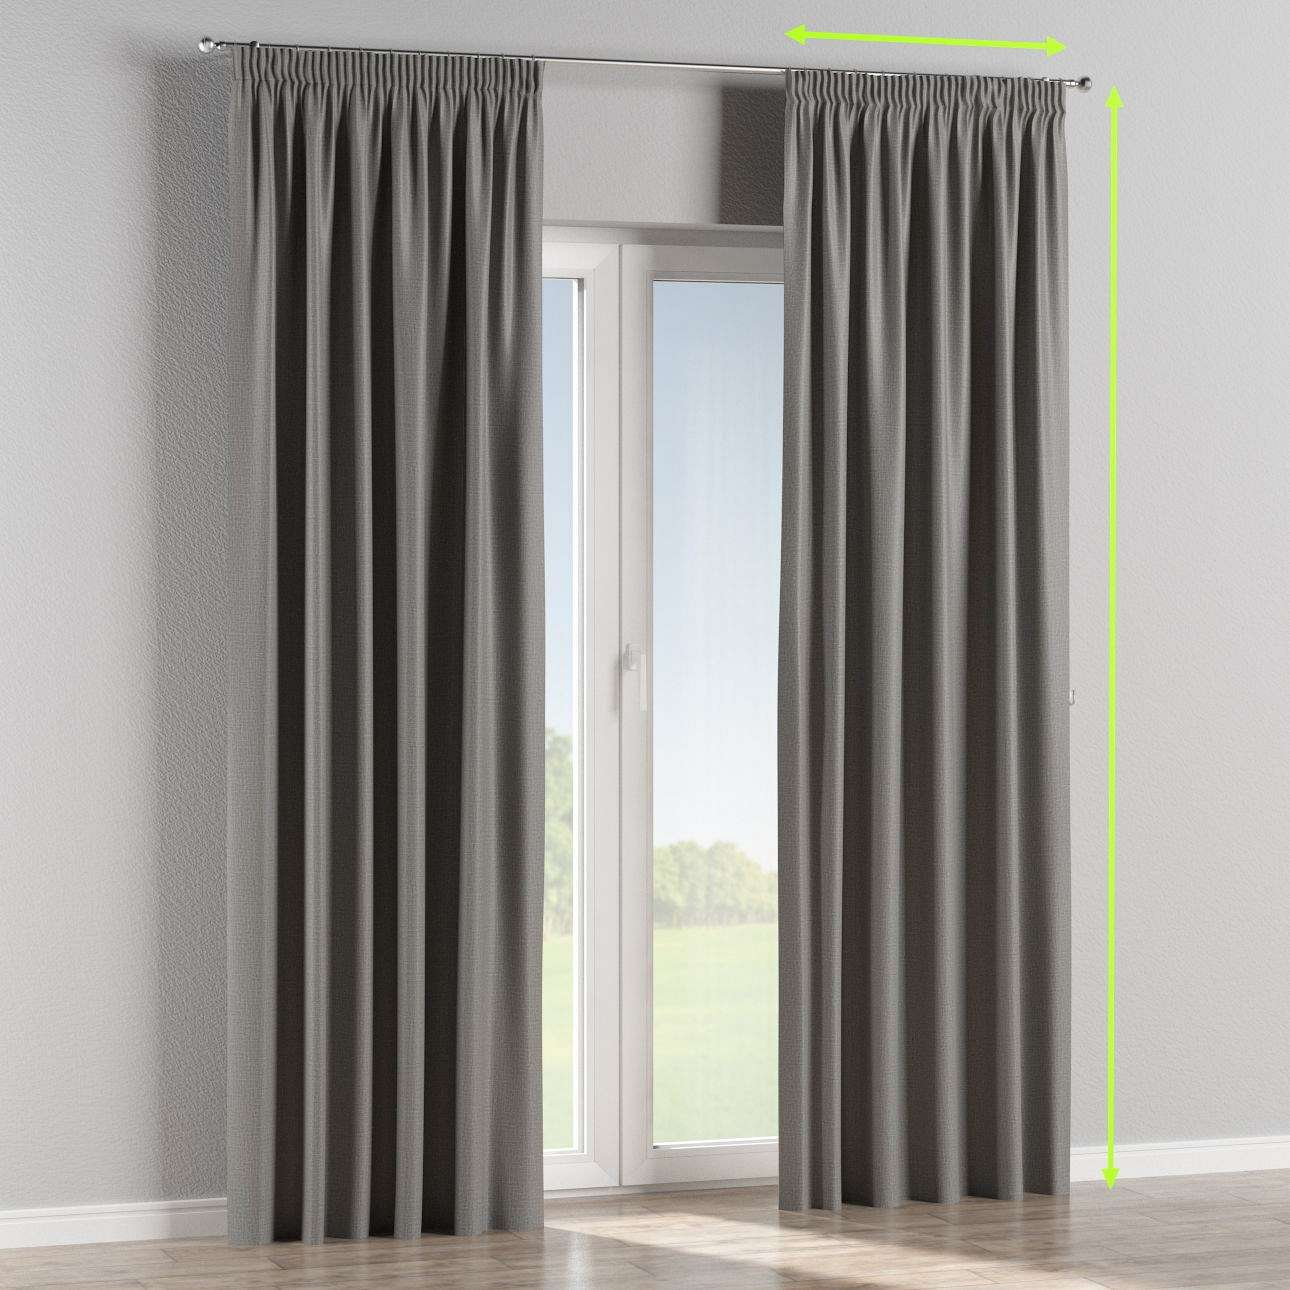 Pencil pleat curtains in collection Blackout, fabric: 269-63